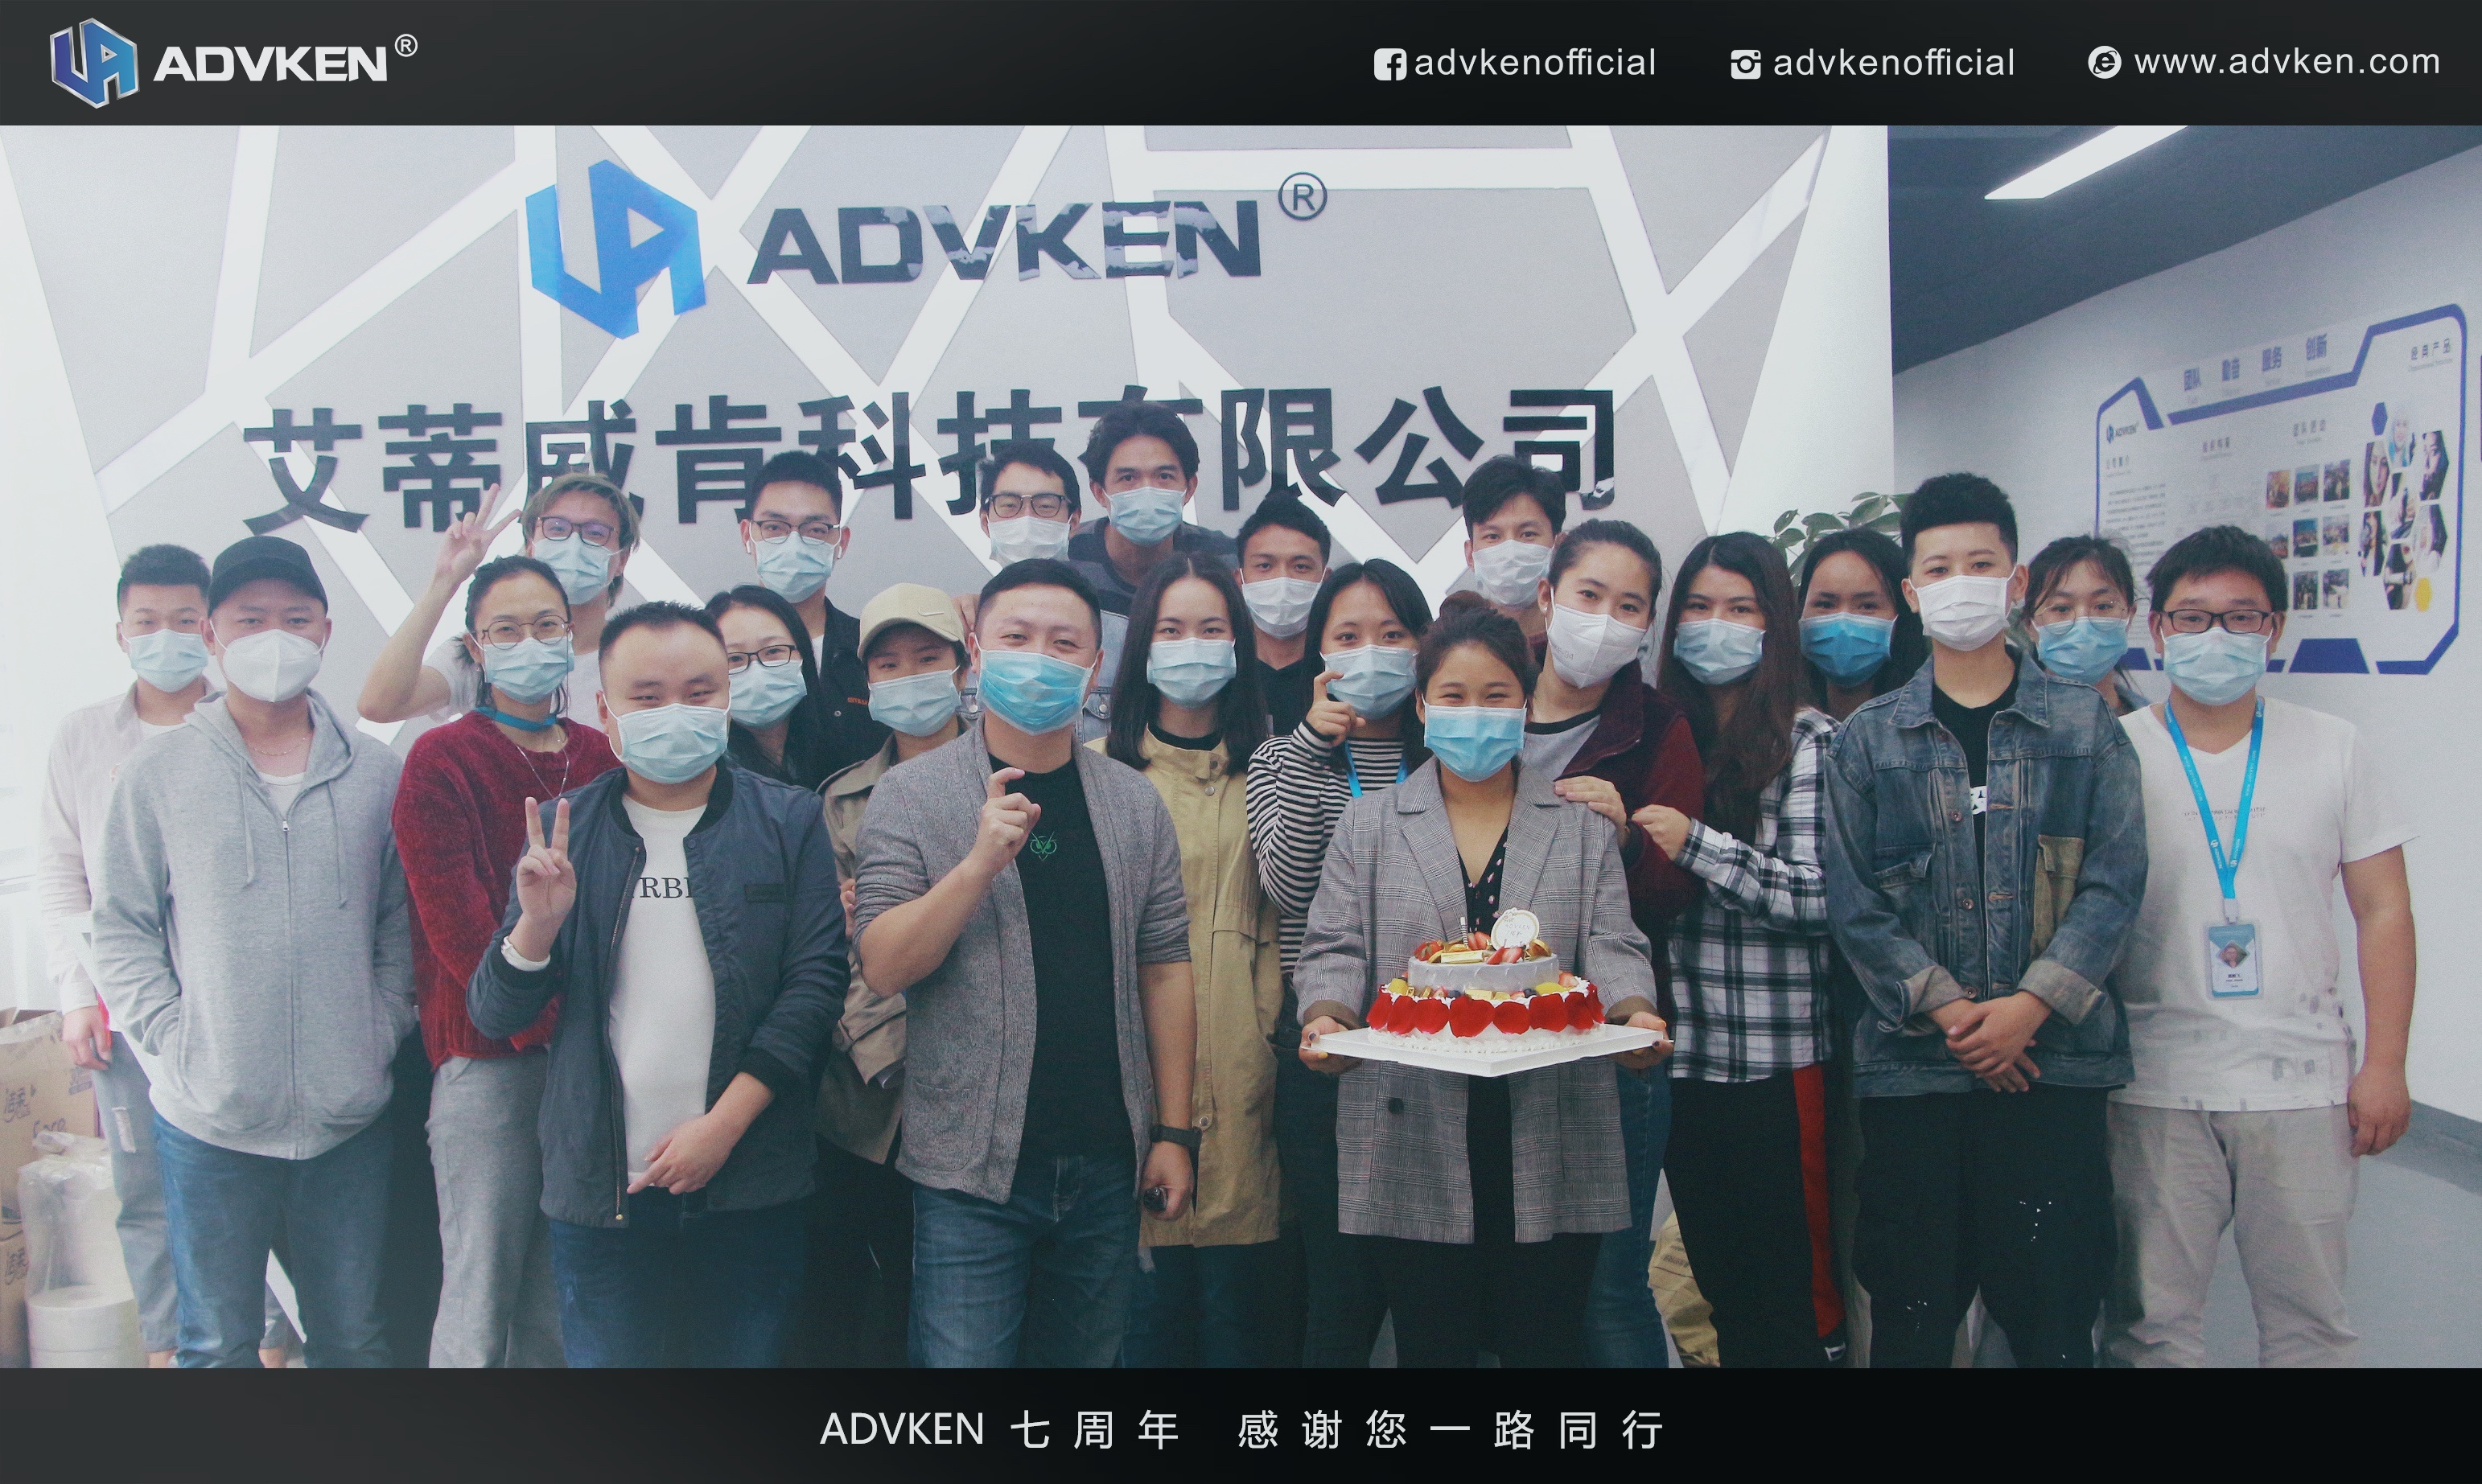 THE 7th ANNIVERSARY OF THE FOUNDING OF ADVKEN